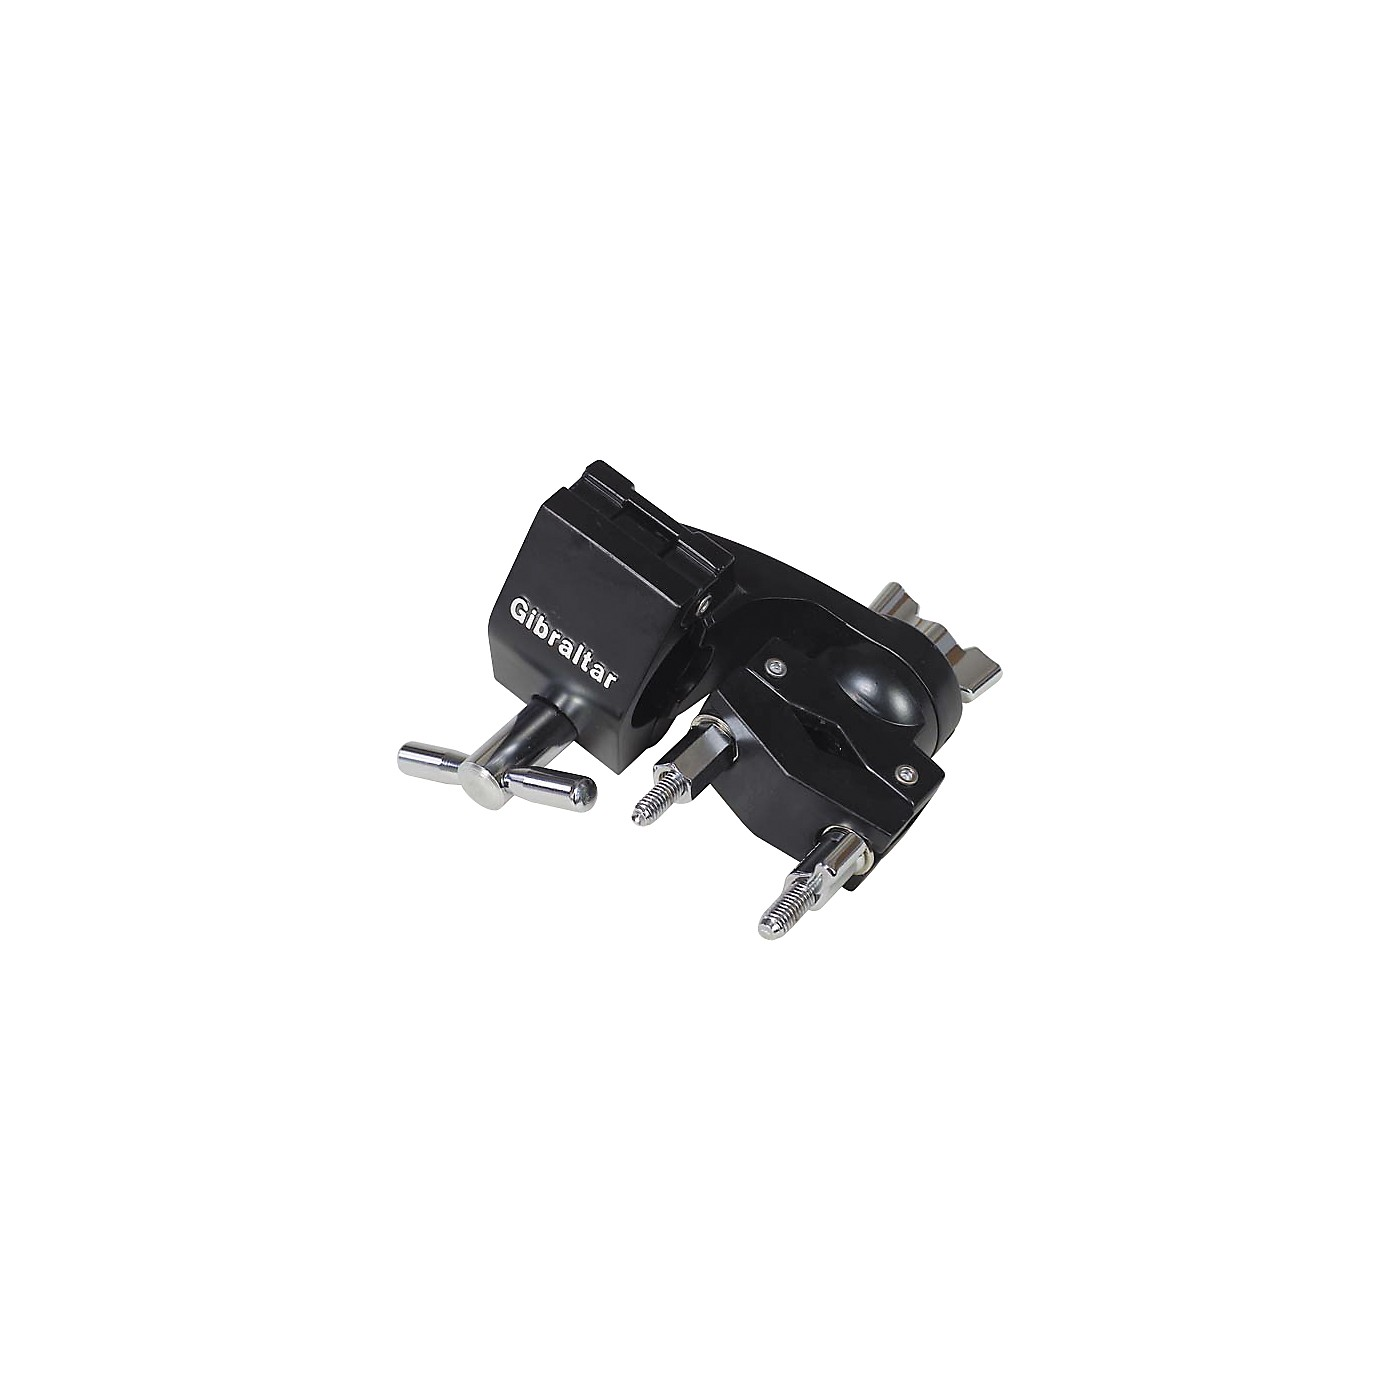 Gibraltar RS Adjustable End Mount Multi Clamp thumbnail